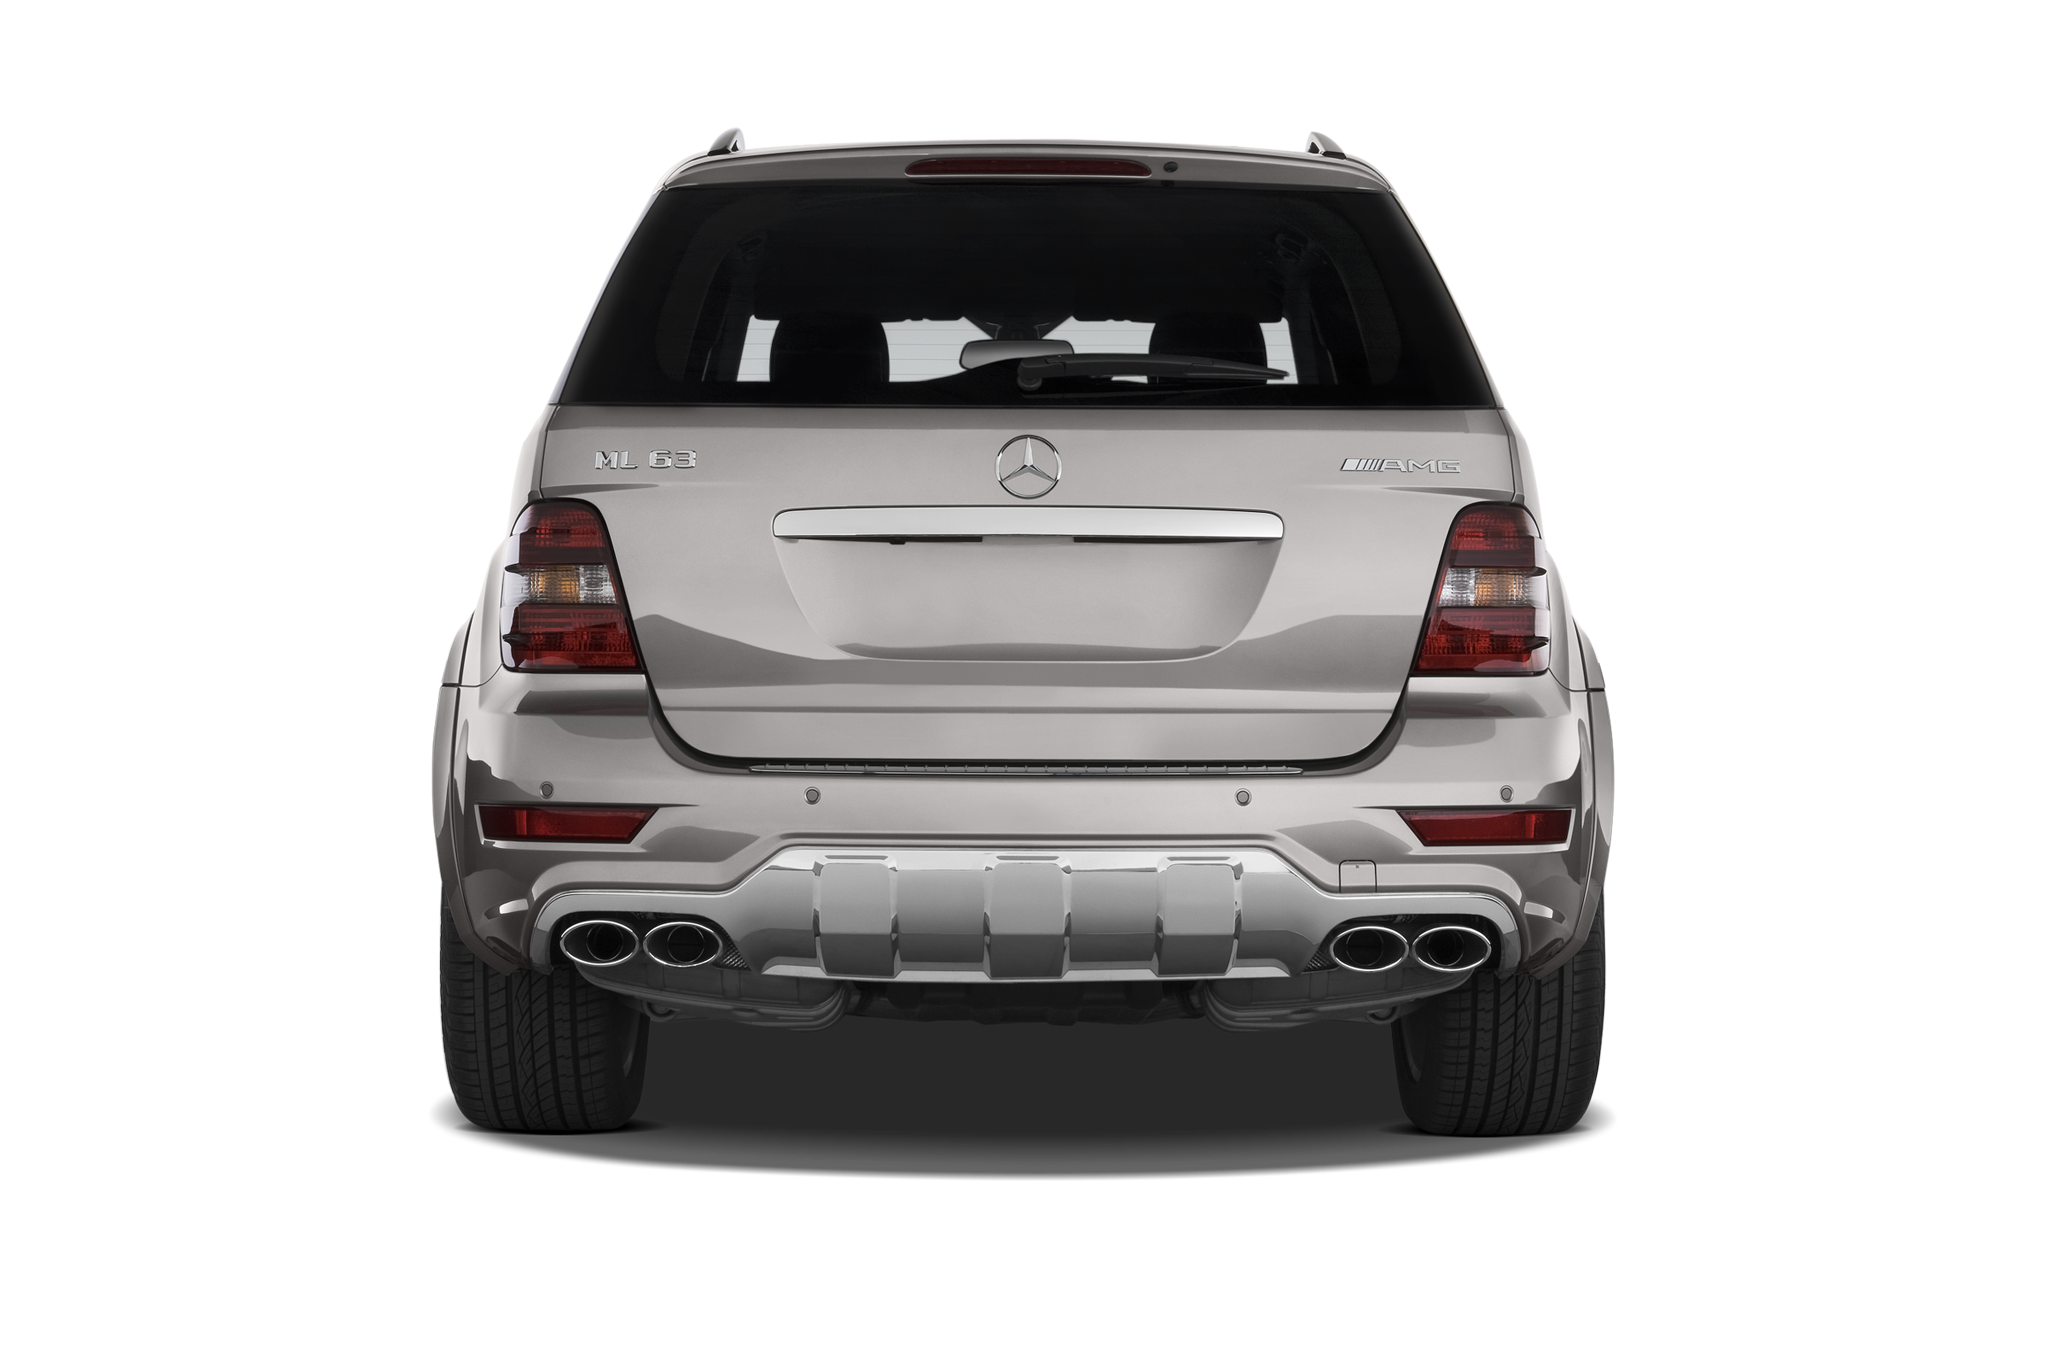 Euro Style Mercedes Benz Updates 2011 Ml63 Amg